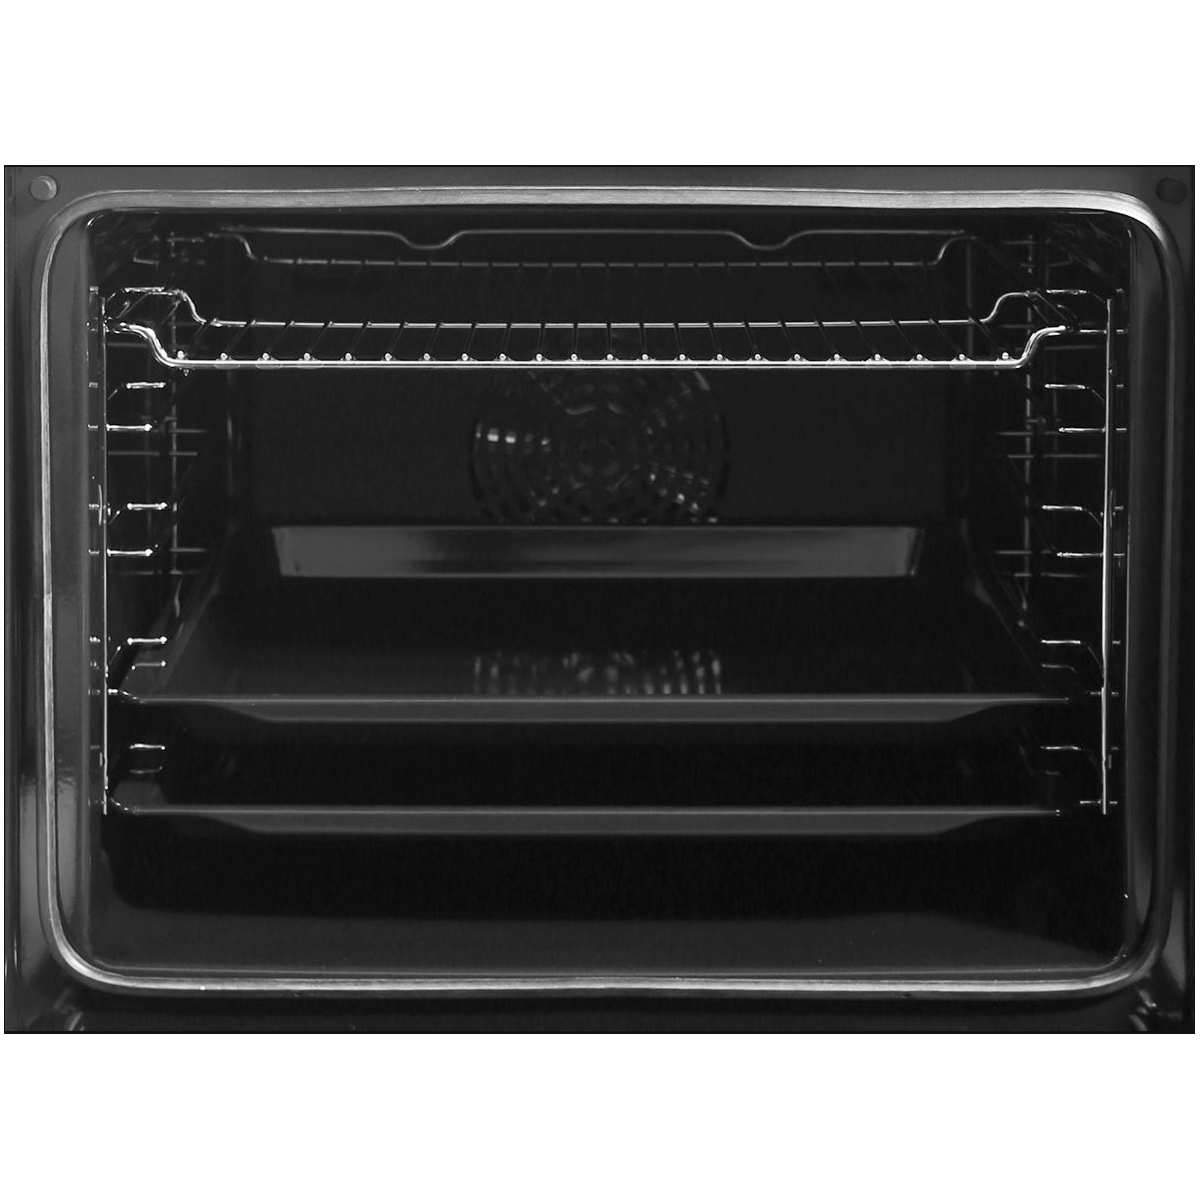 Bosch HBG633BS1A 60cm Serie 8 Electric Built-In Oven 48964